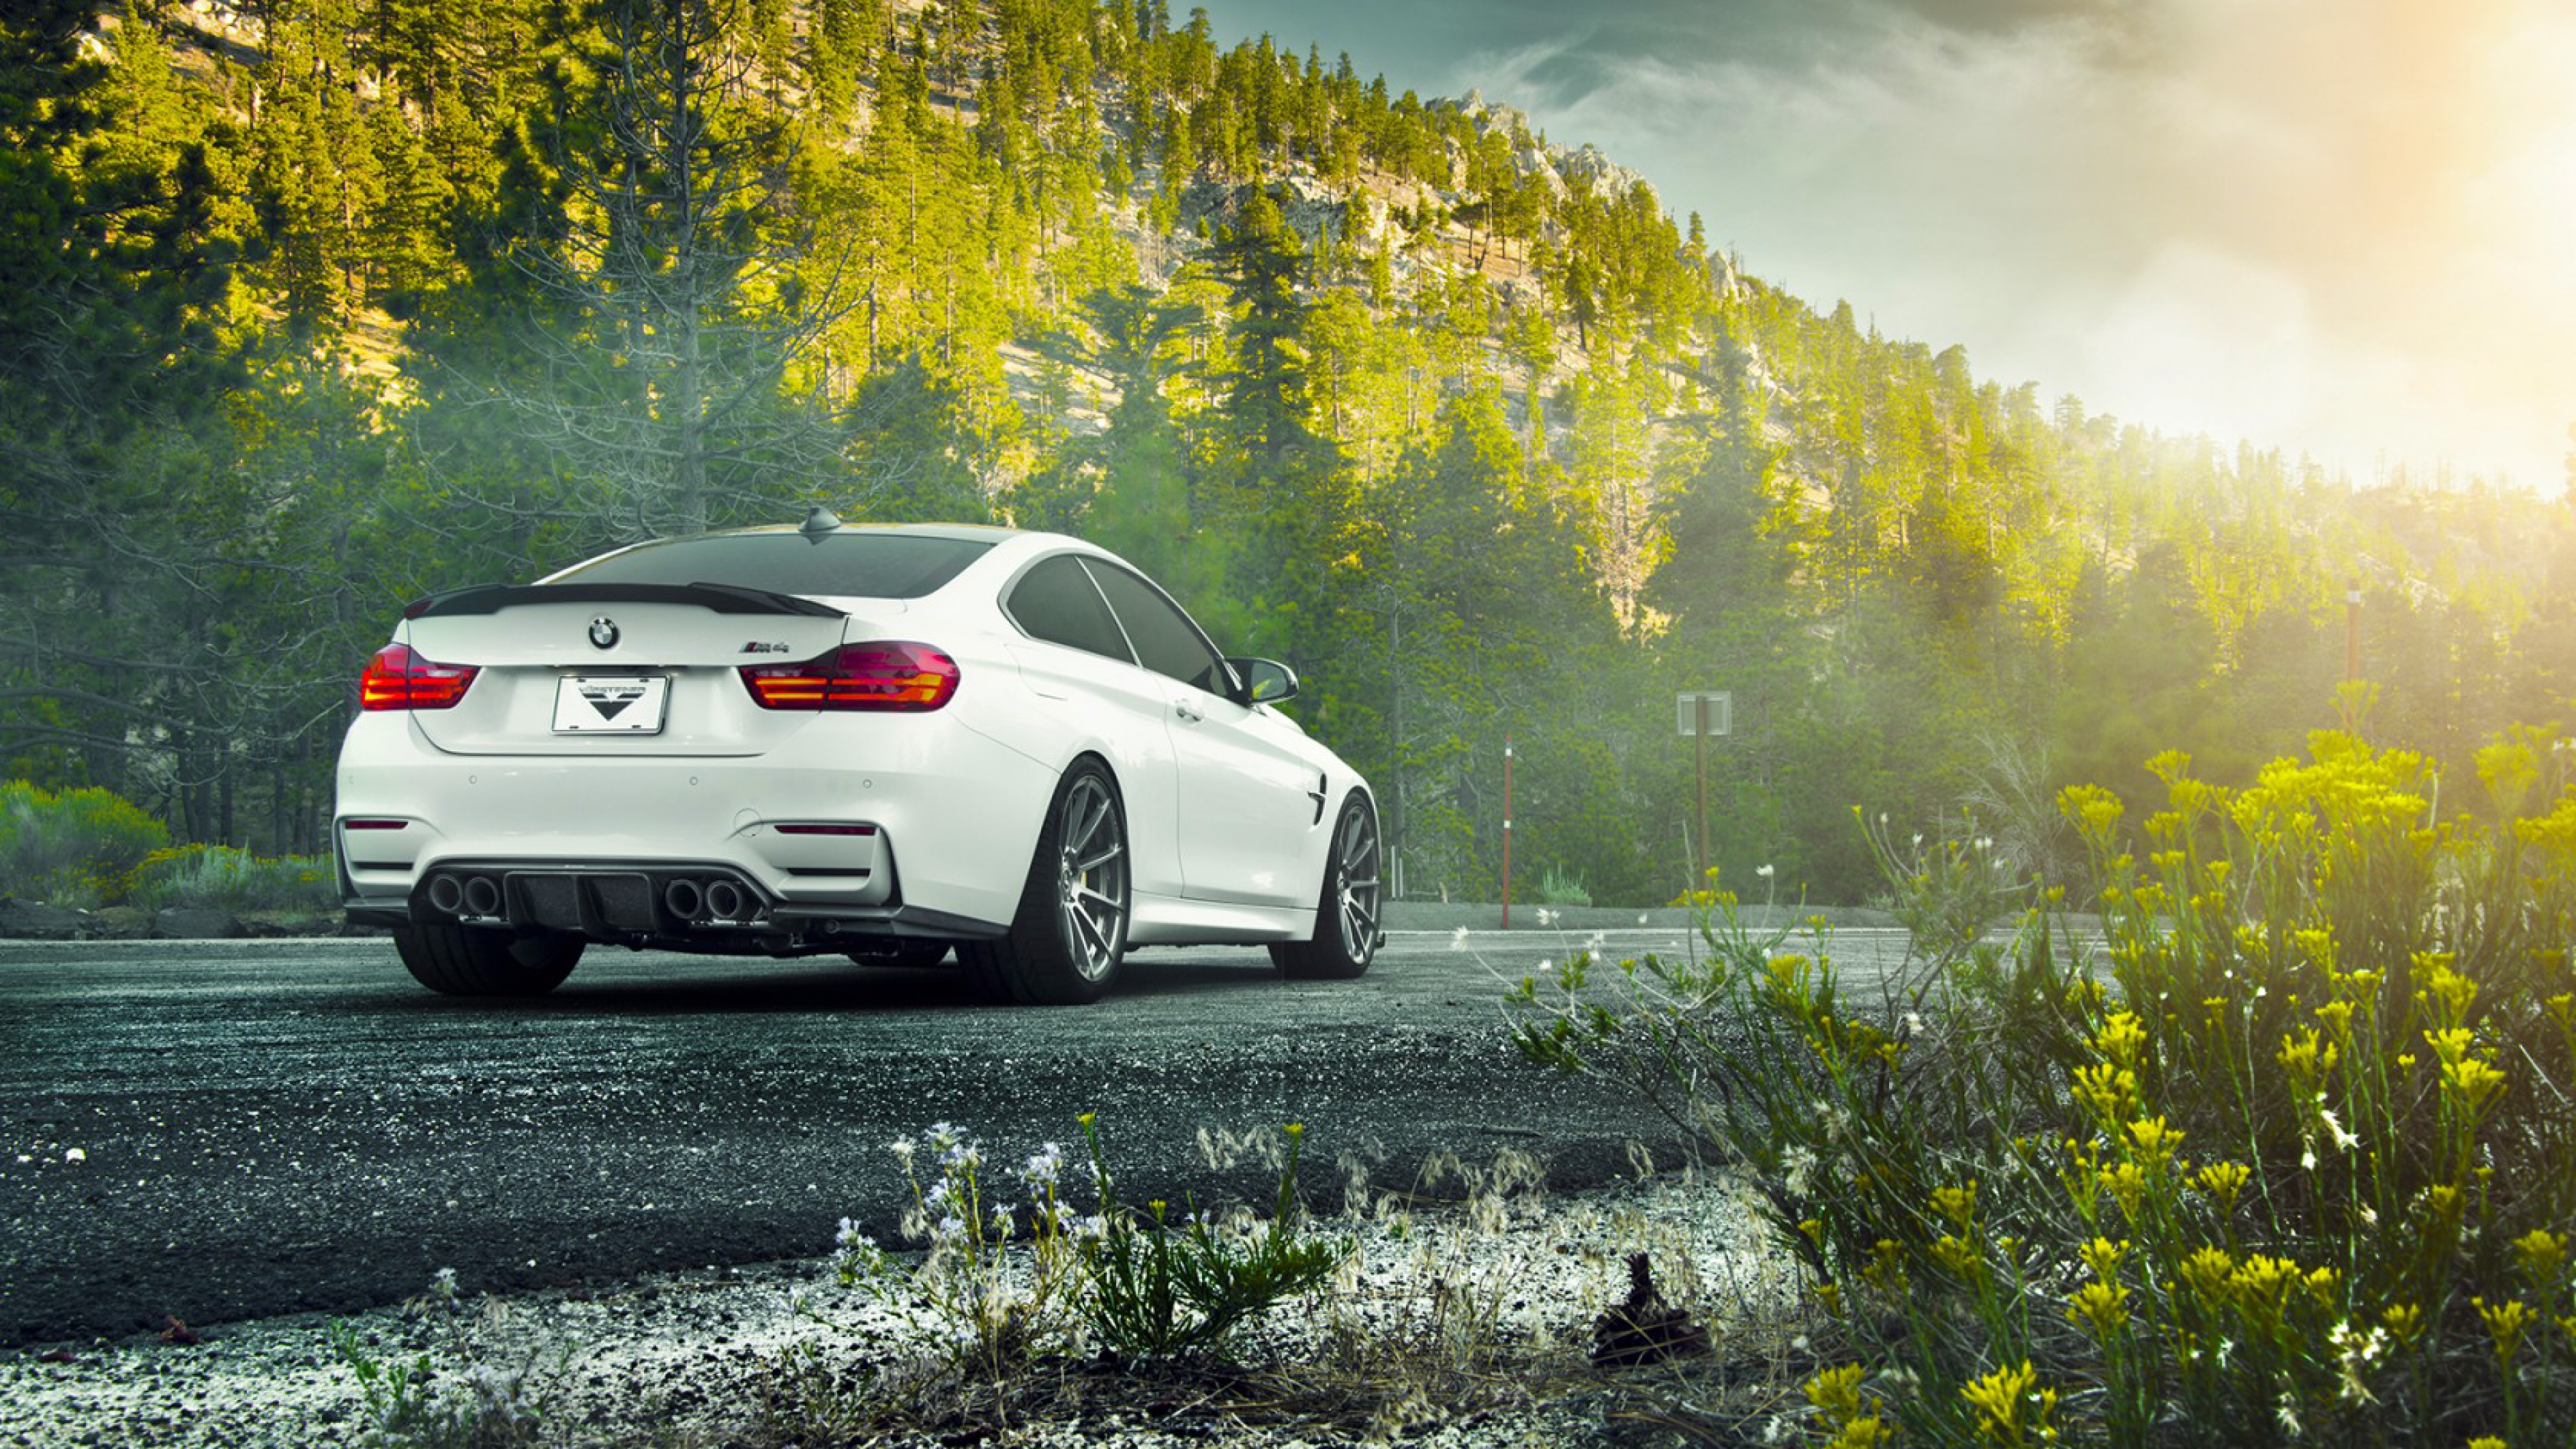 Bmw M4 Backgrounds Free Download Wallpaper Wiki